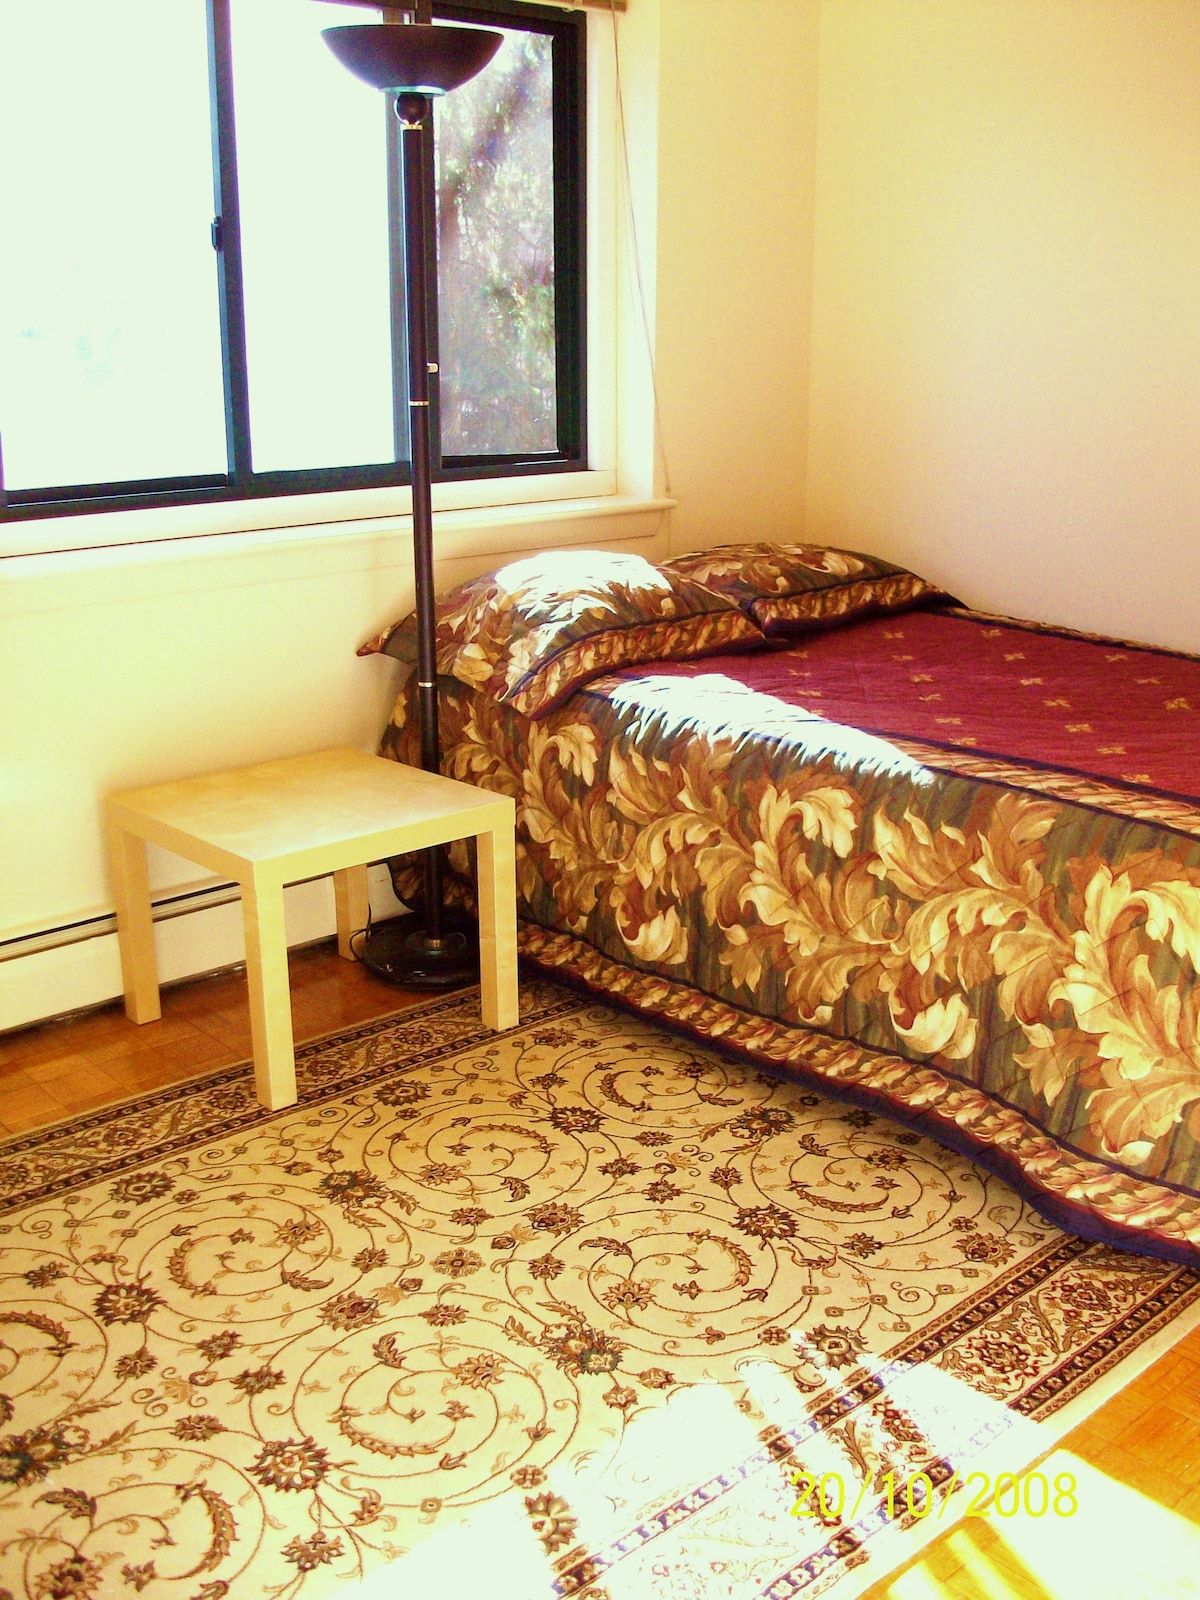 2nd Bedroom w/ 1 Double Bed, Desk, Chair, Bookcase, and Dresser, etc.